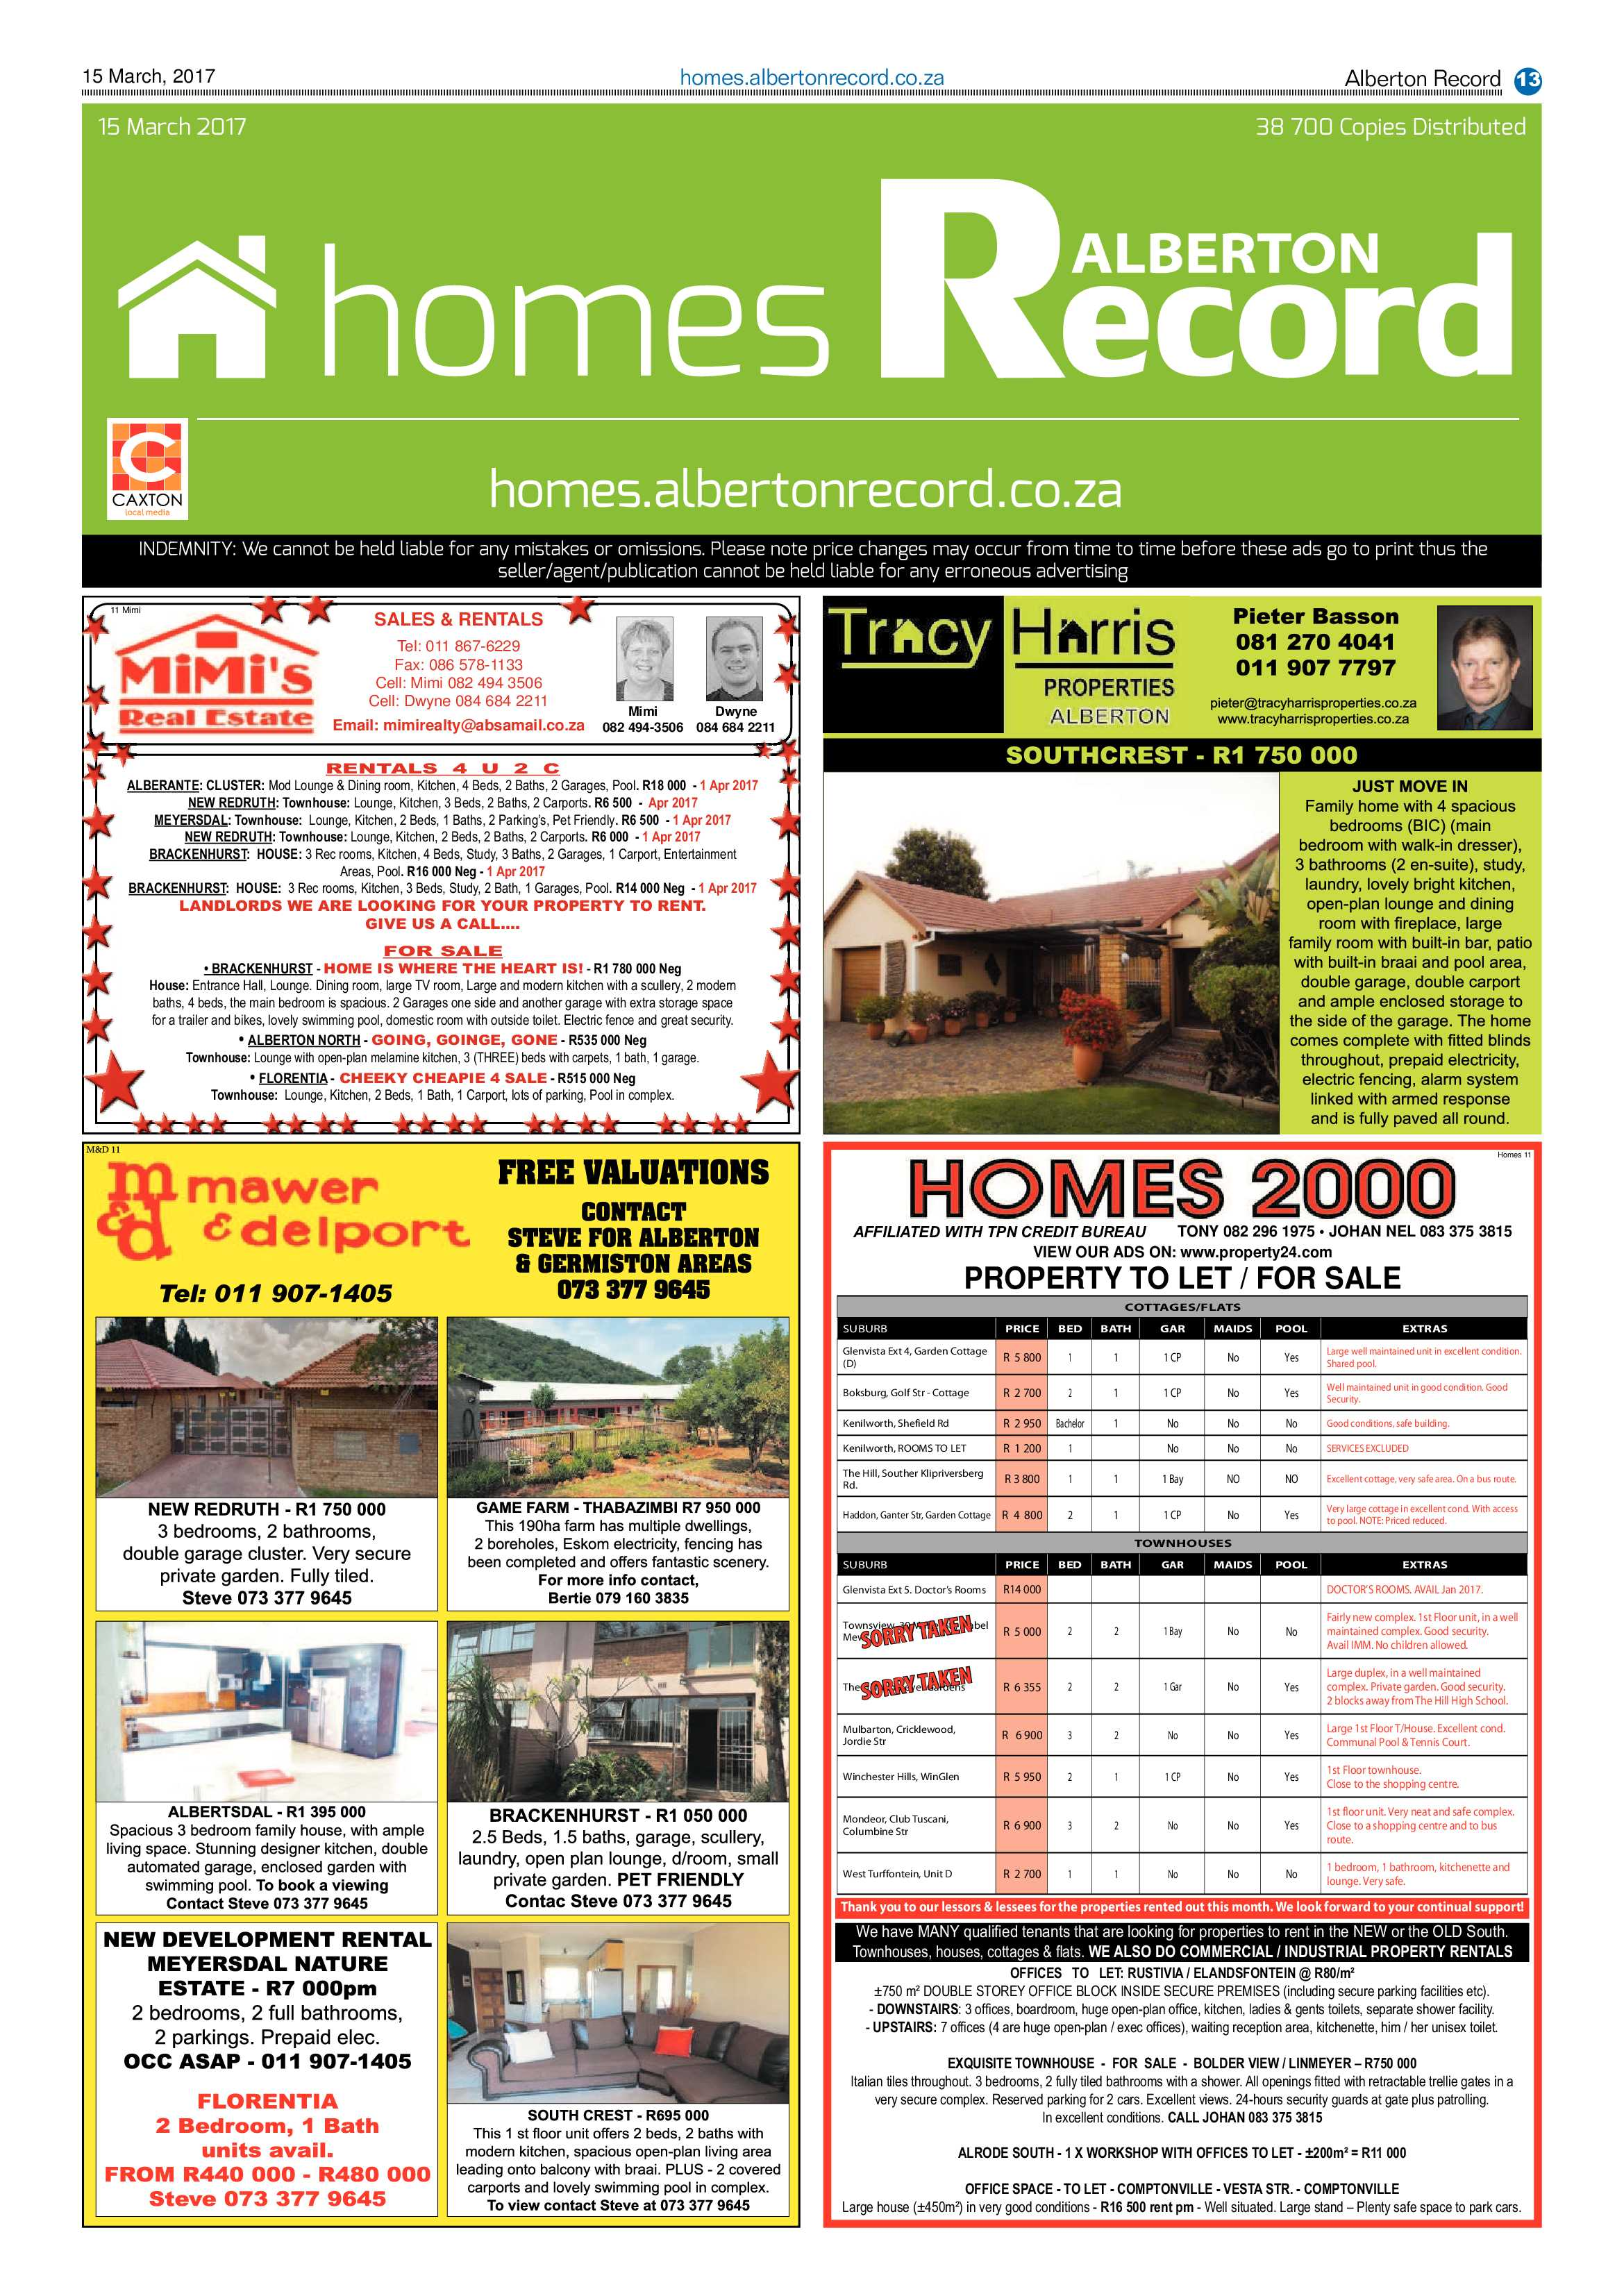 alberton-record-15-march-2017-epapers-page-13